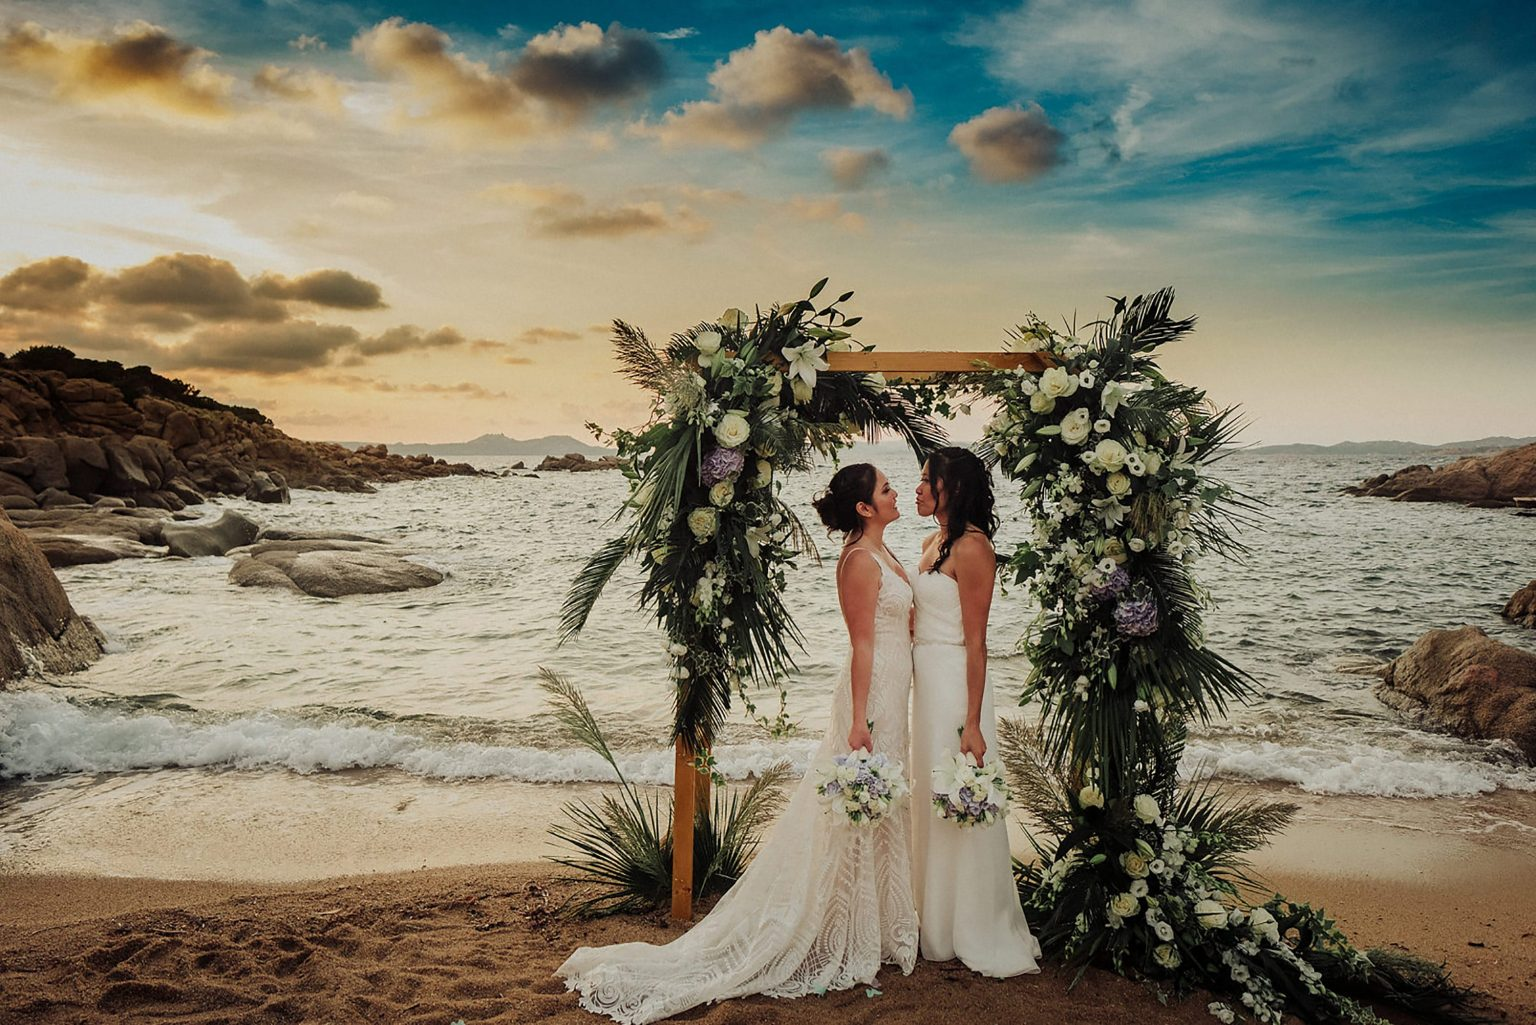 Cheryl and Leslye, ceremony arch on the beach